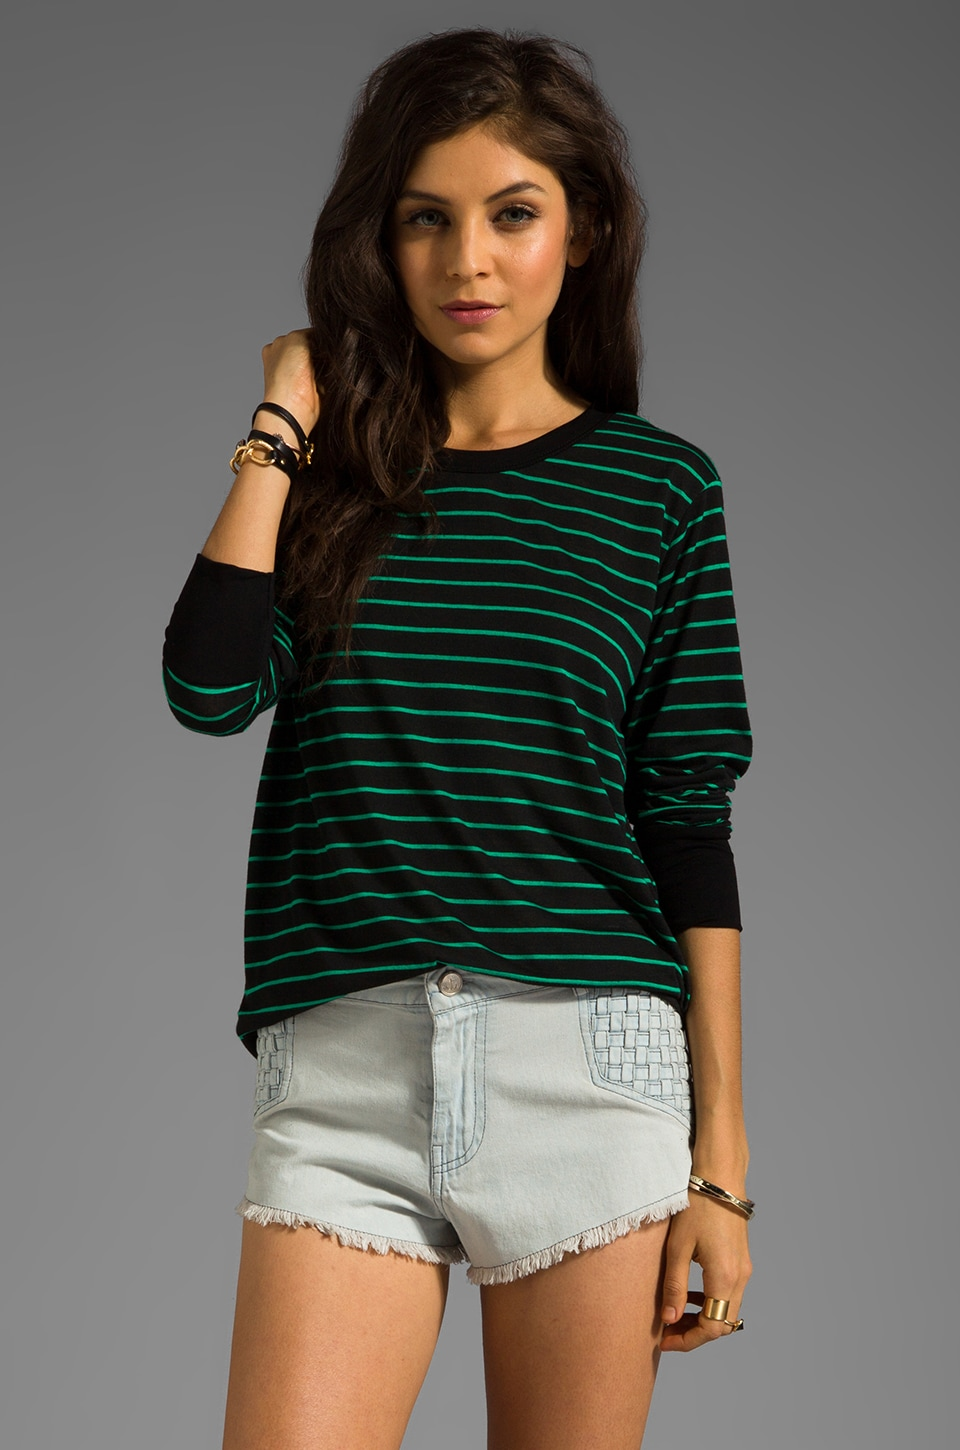 LNA Sandy Long Sleeve Tee in Black/Green Stripe